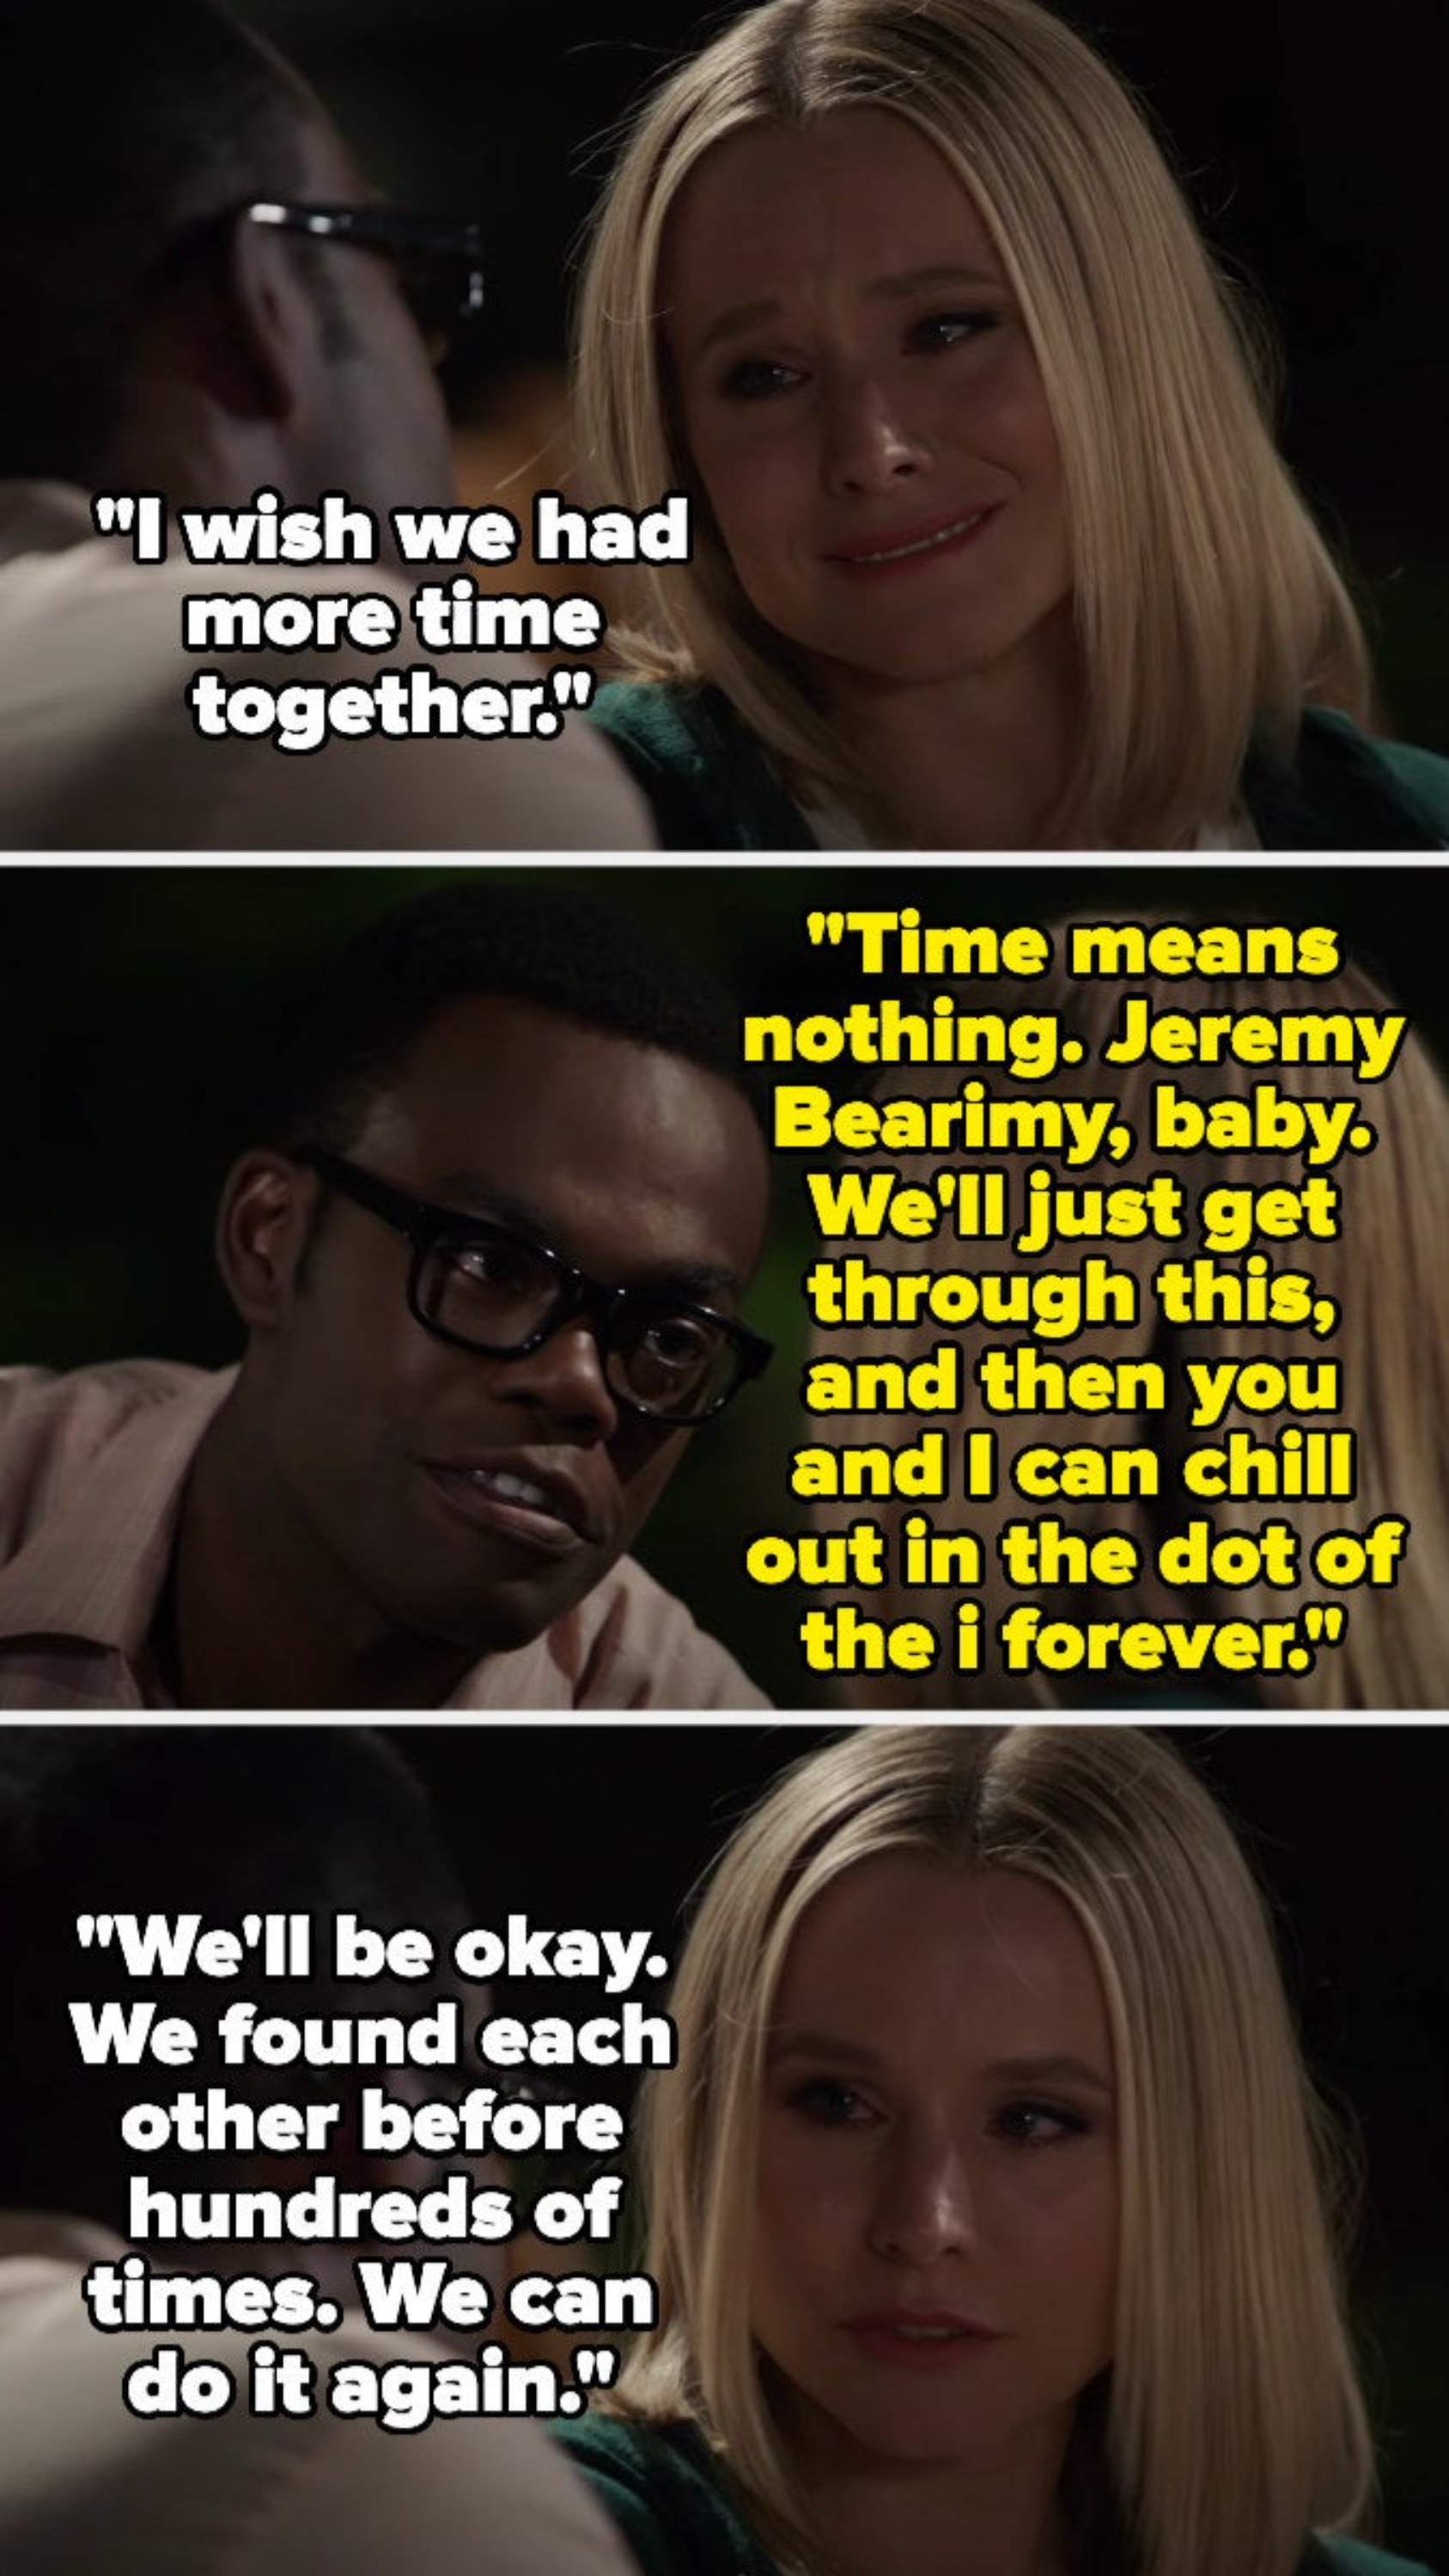 Eleanor says she wishes they had more time together, but Chidi says time means nothing 'cause of Jeremy Bearimy, and that later they can chill in the dot above the i — Eleanor says they've found each other hundreds of times before and can again